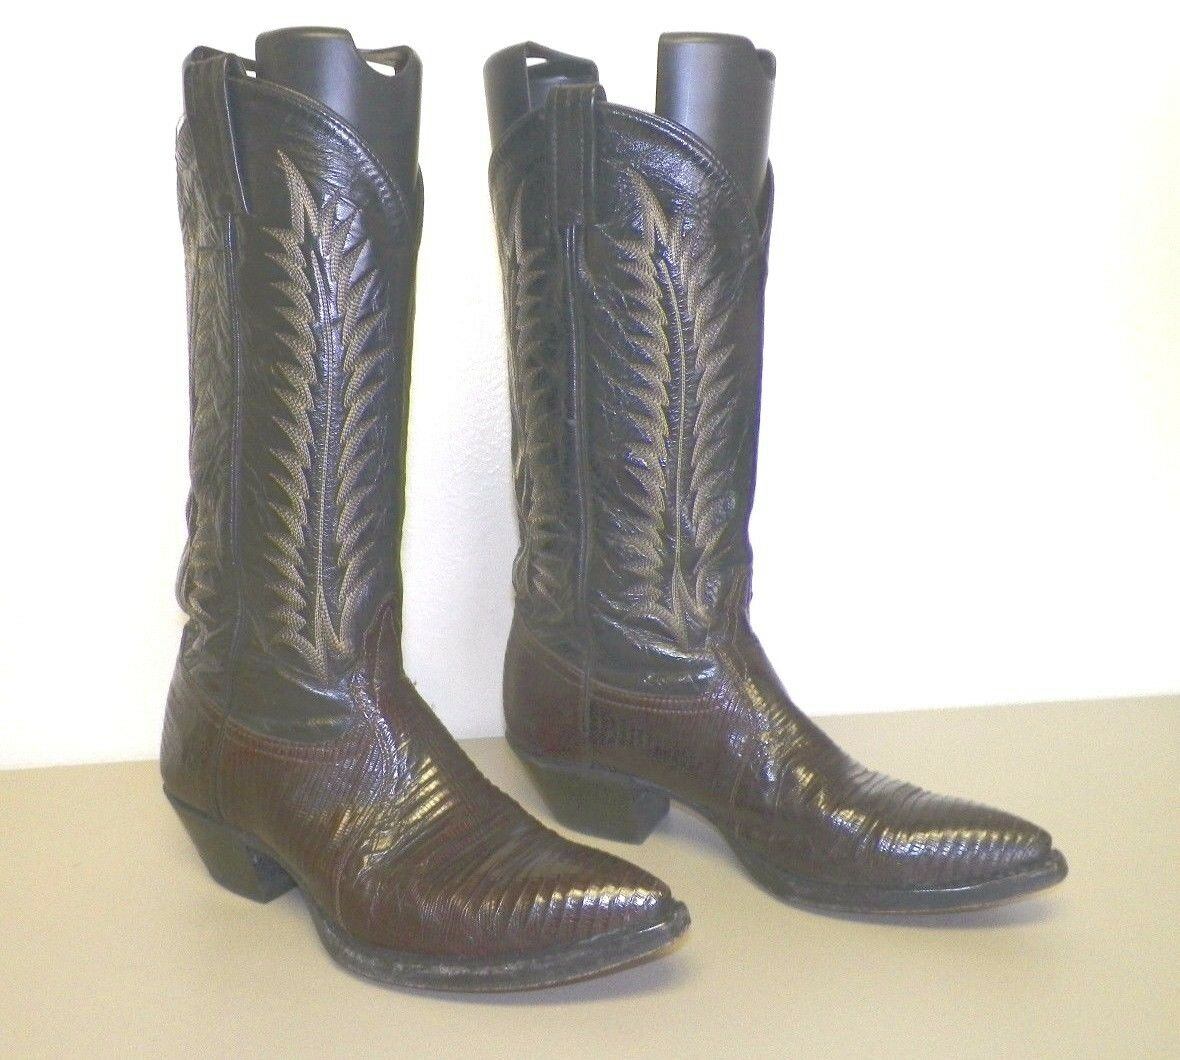 MEN'S TONY LAMA BLACK & BROWN LEATHER WESTERN COWBOY BOOTS SIZE 6 1 2 GOOD USED